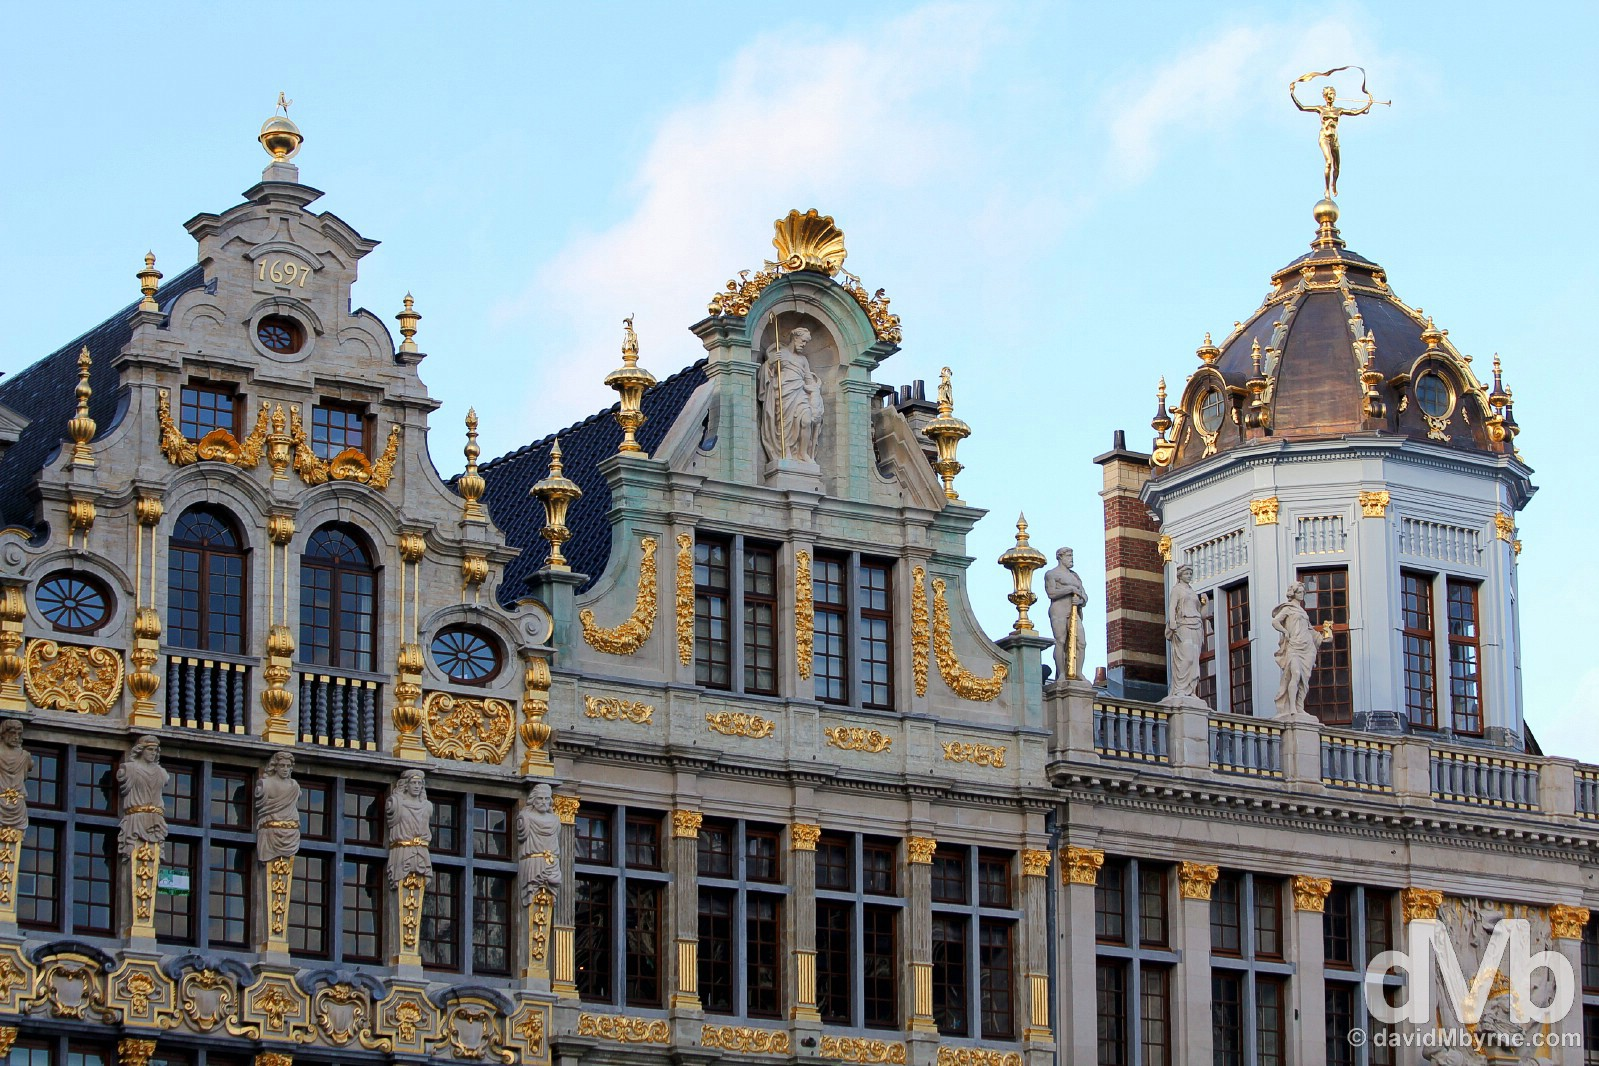 Building facades in Grand Place, Brussels, Belgium. January 14, 2016.